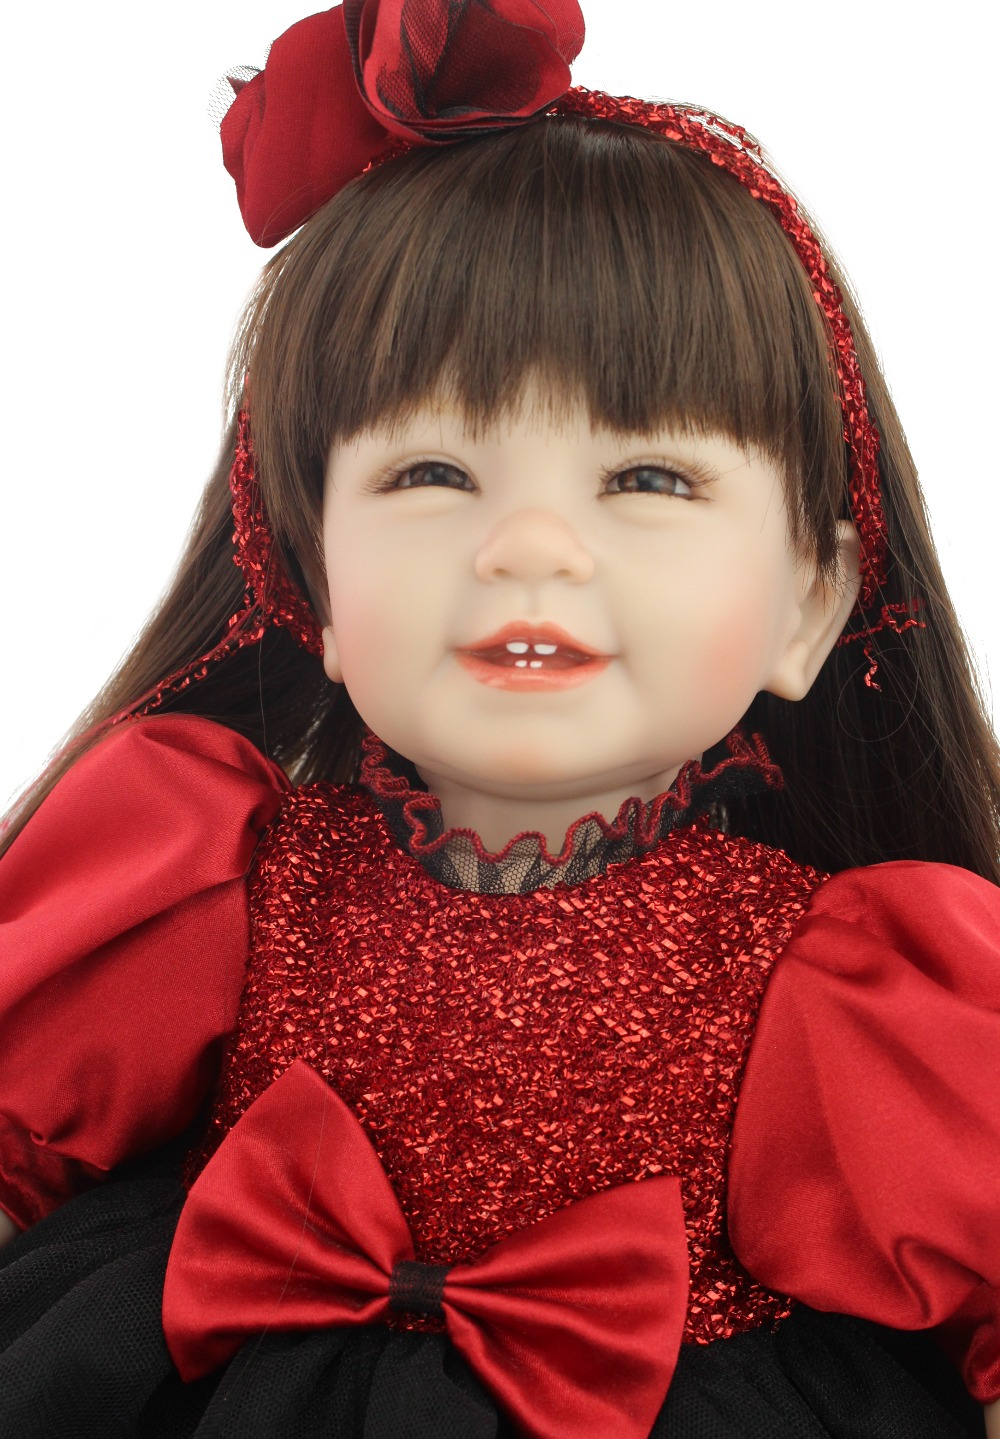 2015 NEW design hot sale lifelike reborn todder girl doll wholesale baby dolls fashion doll Christmas gift2015 NEW design hot sale lifelike reborn todder girl doll wholesale baby dolls fashion doll Christmas gift